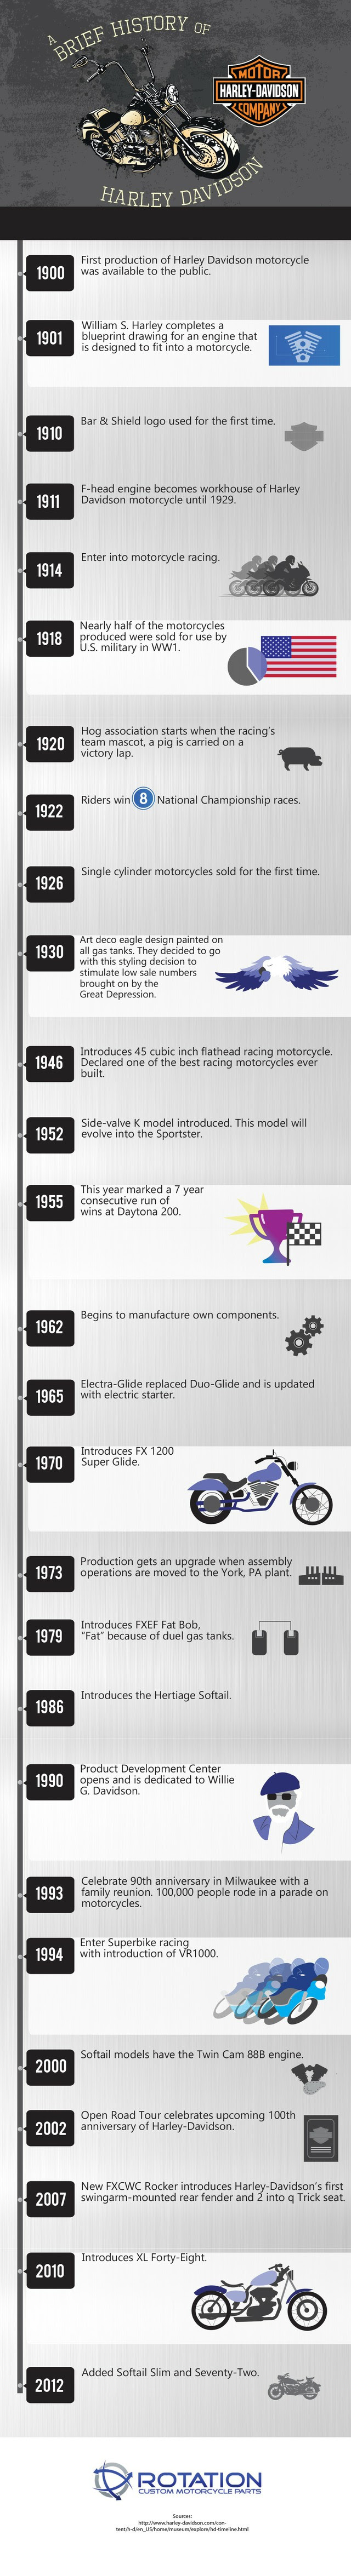 Infographic: A Brief History of Harley Davidson